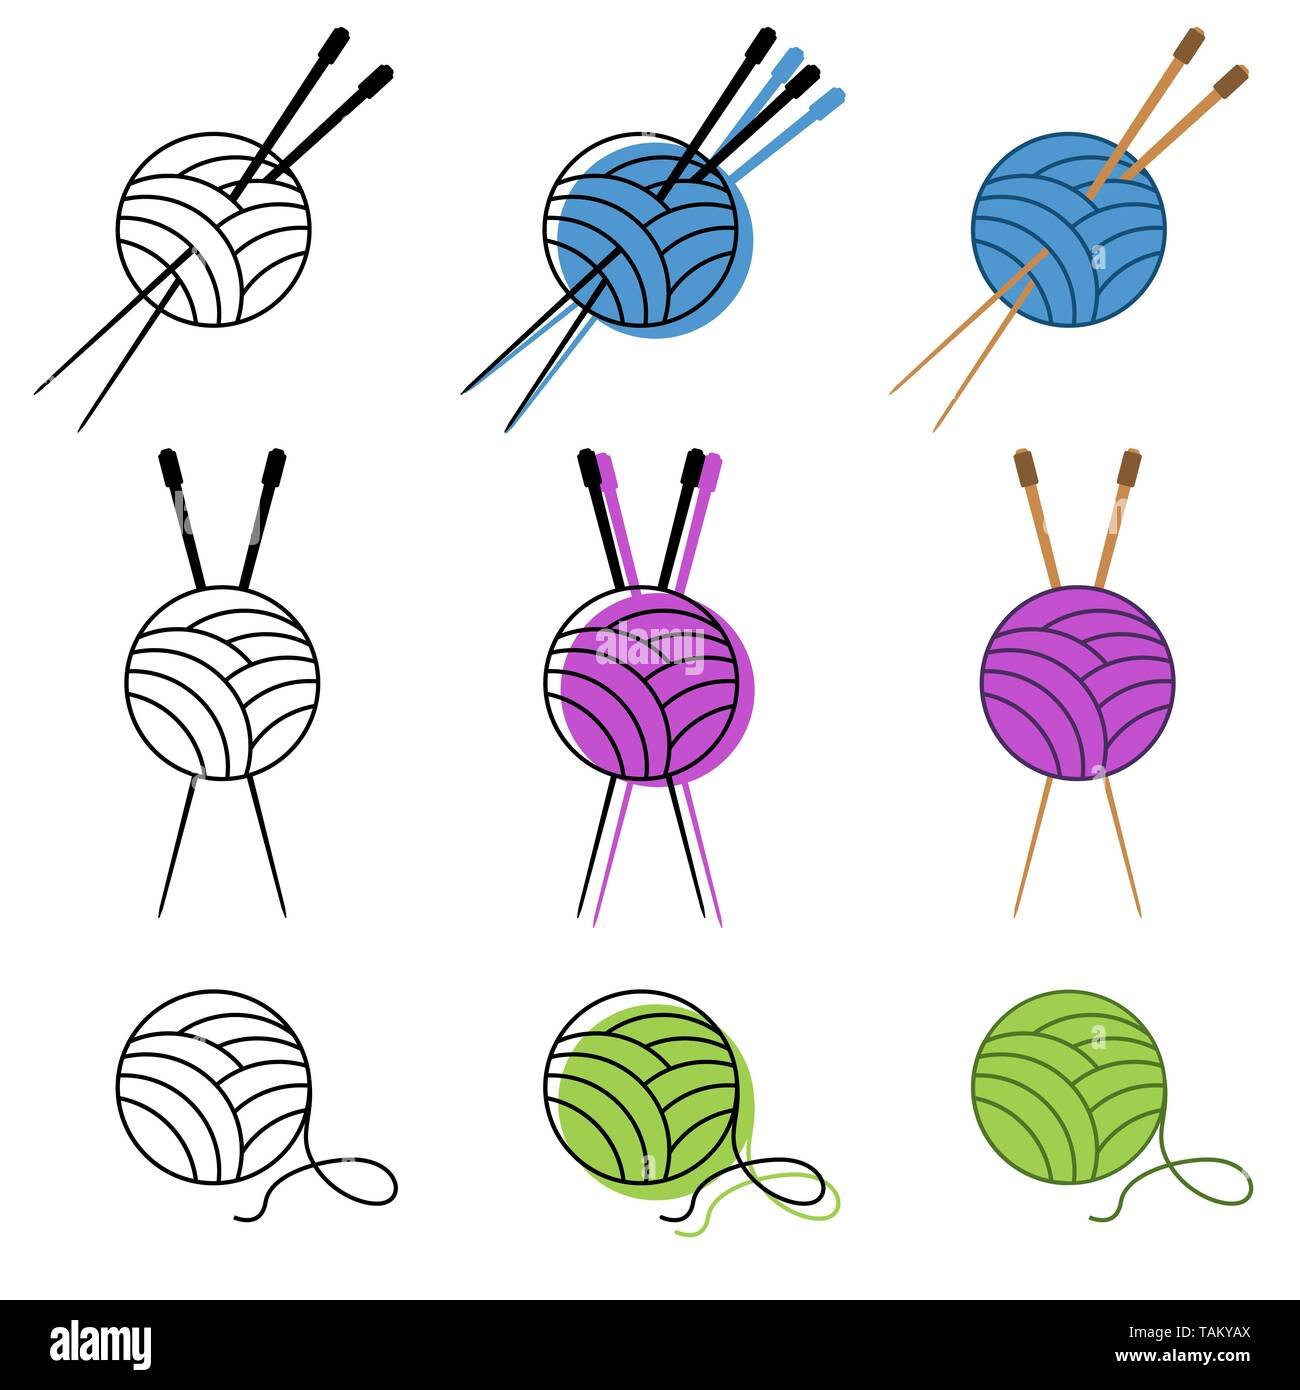 knitting icon set vector in different colors. vector illustration - Stock Vector